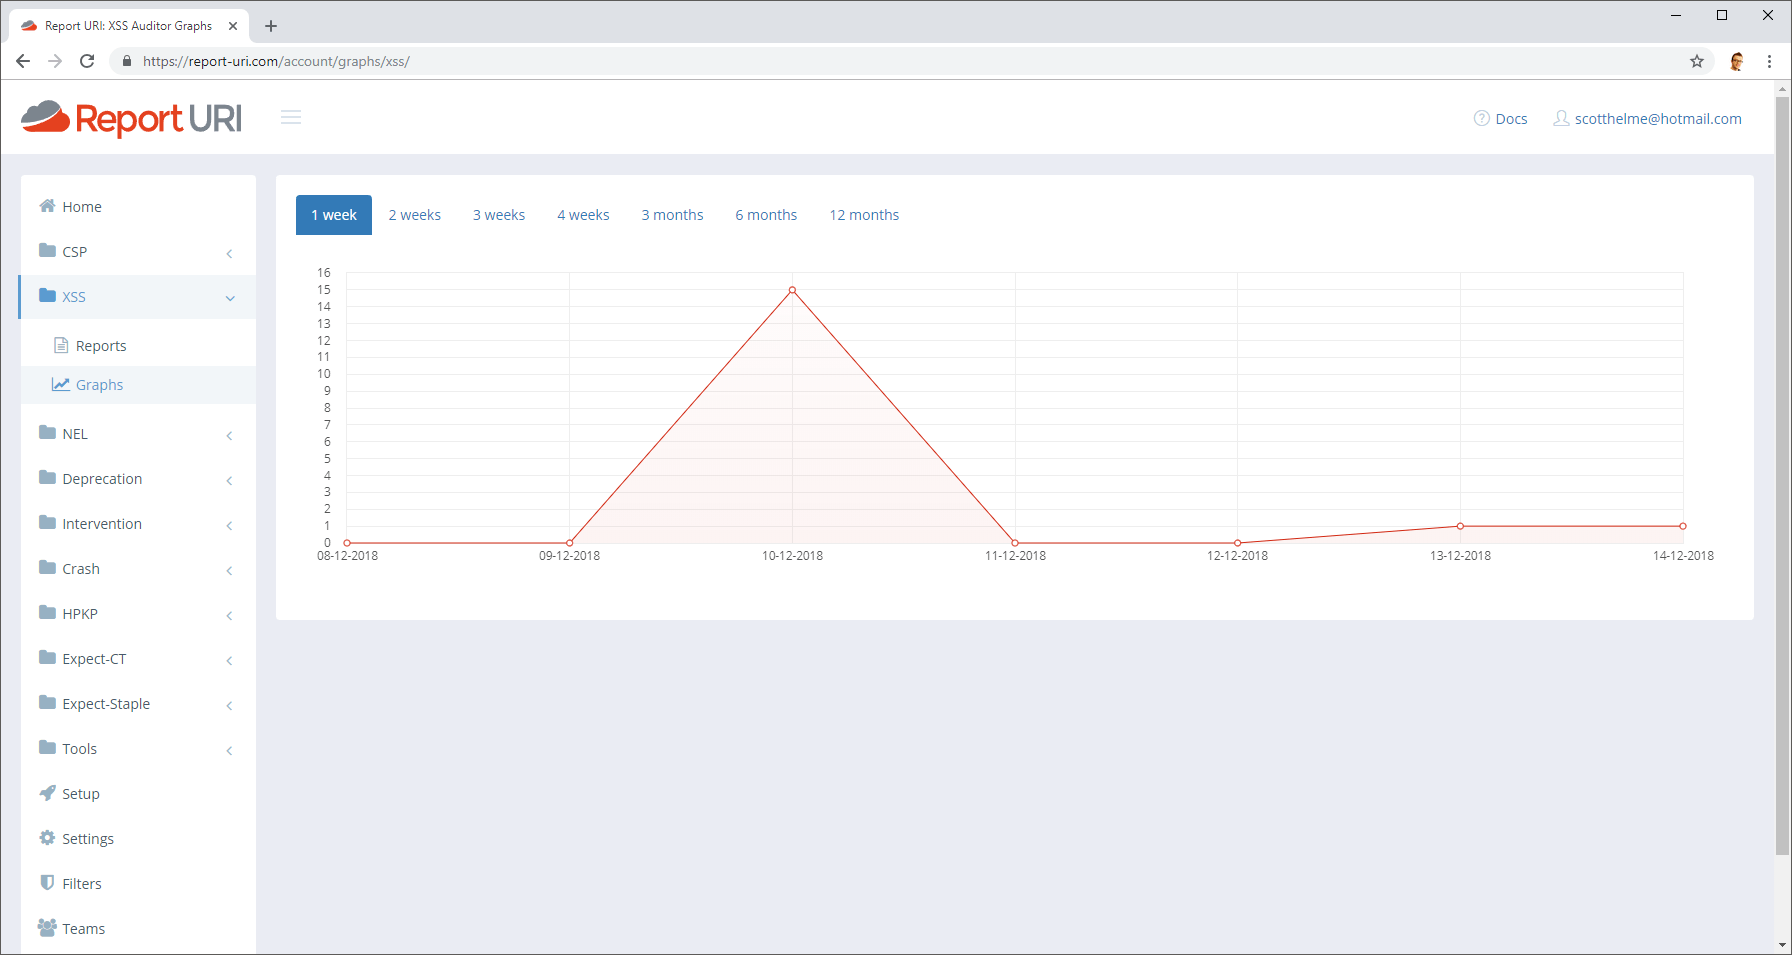 XSS Auditor Graphs view